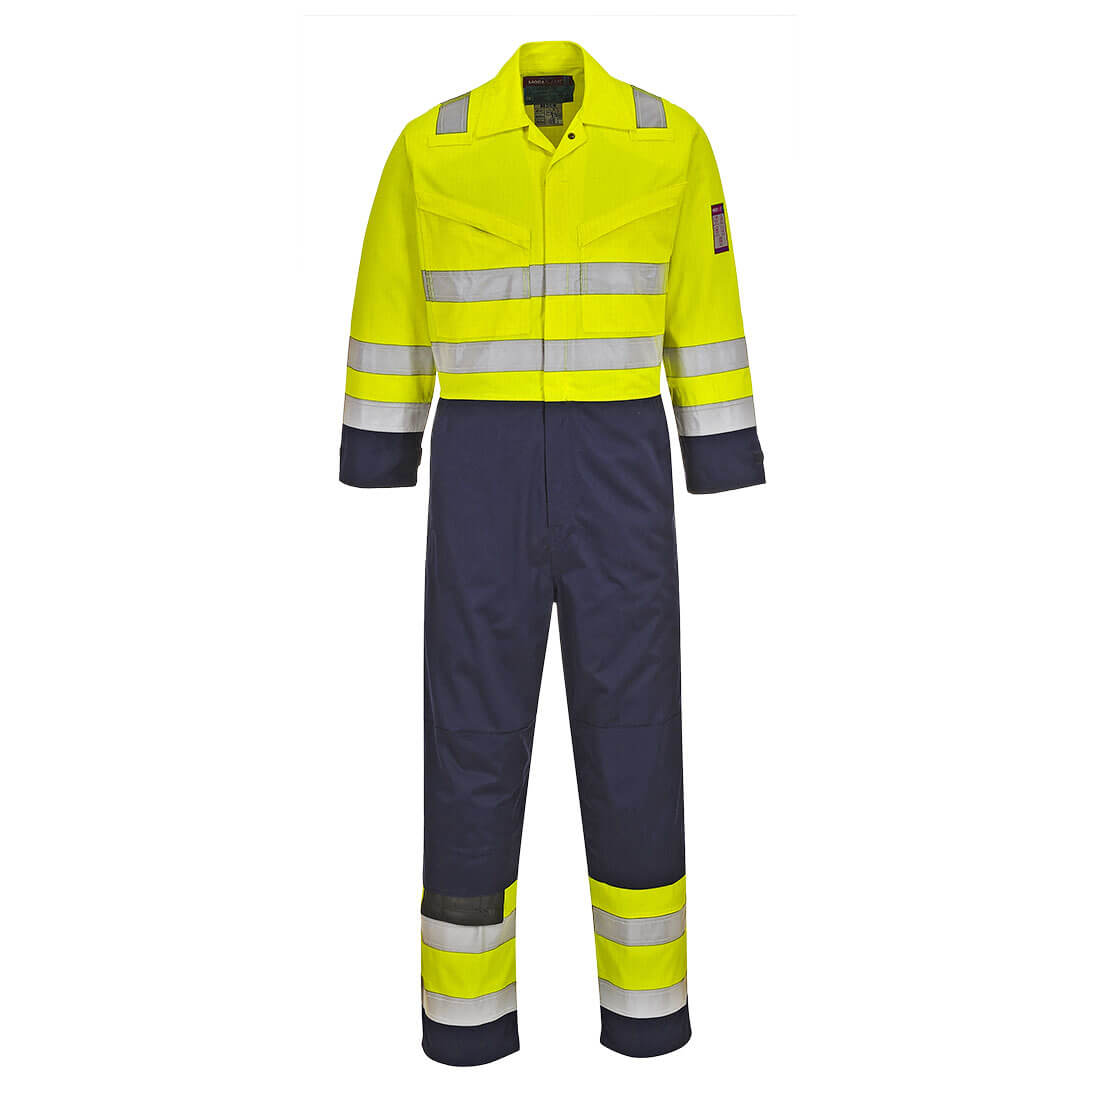 """Image of Modaflame Flame Resistant Hi Vis Overall Yellow / Navy Medium 34"""""""